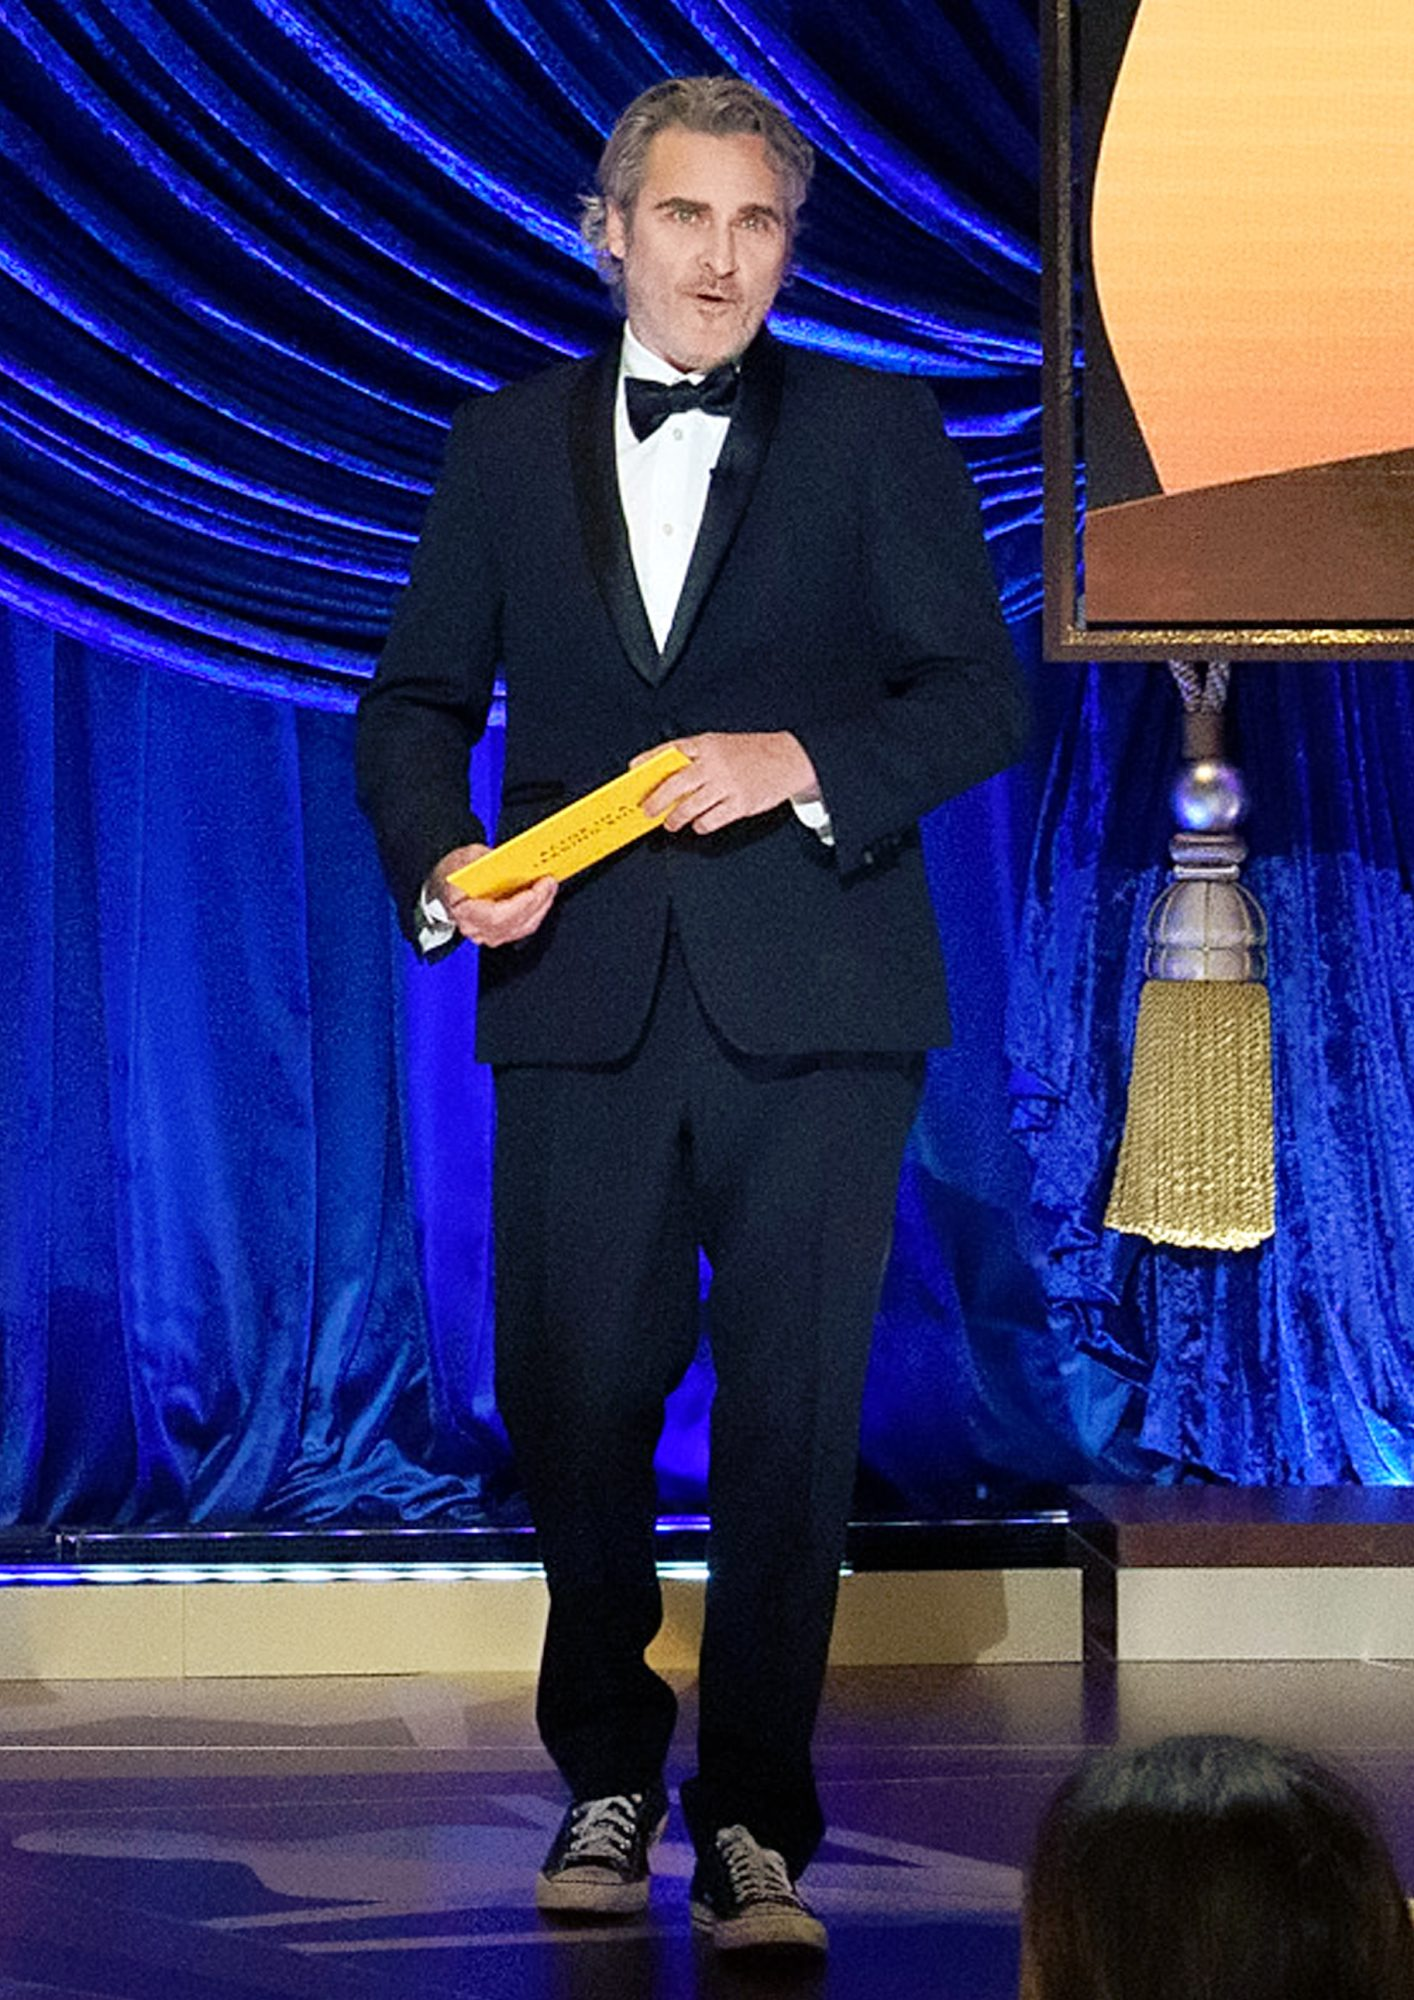 Joaquin Phoenix presents the Oscar for Actor in a Leading Role the 93rd Annual Academy Awards at Union Station on April 25, 2021